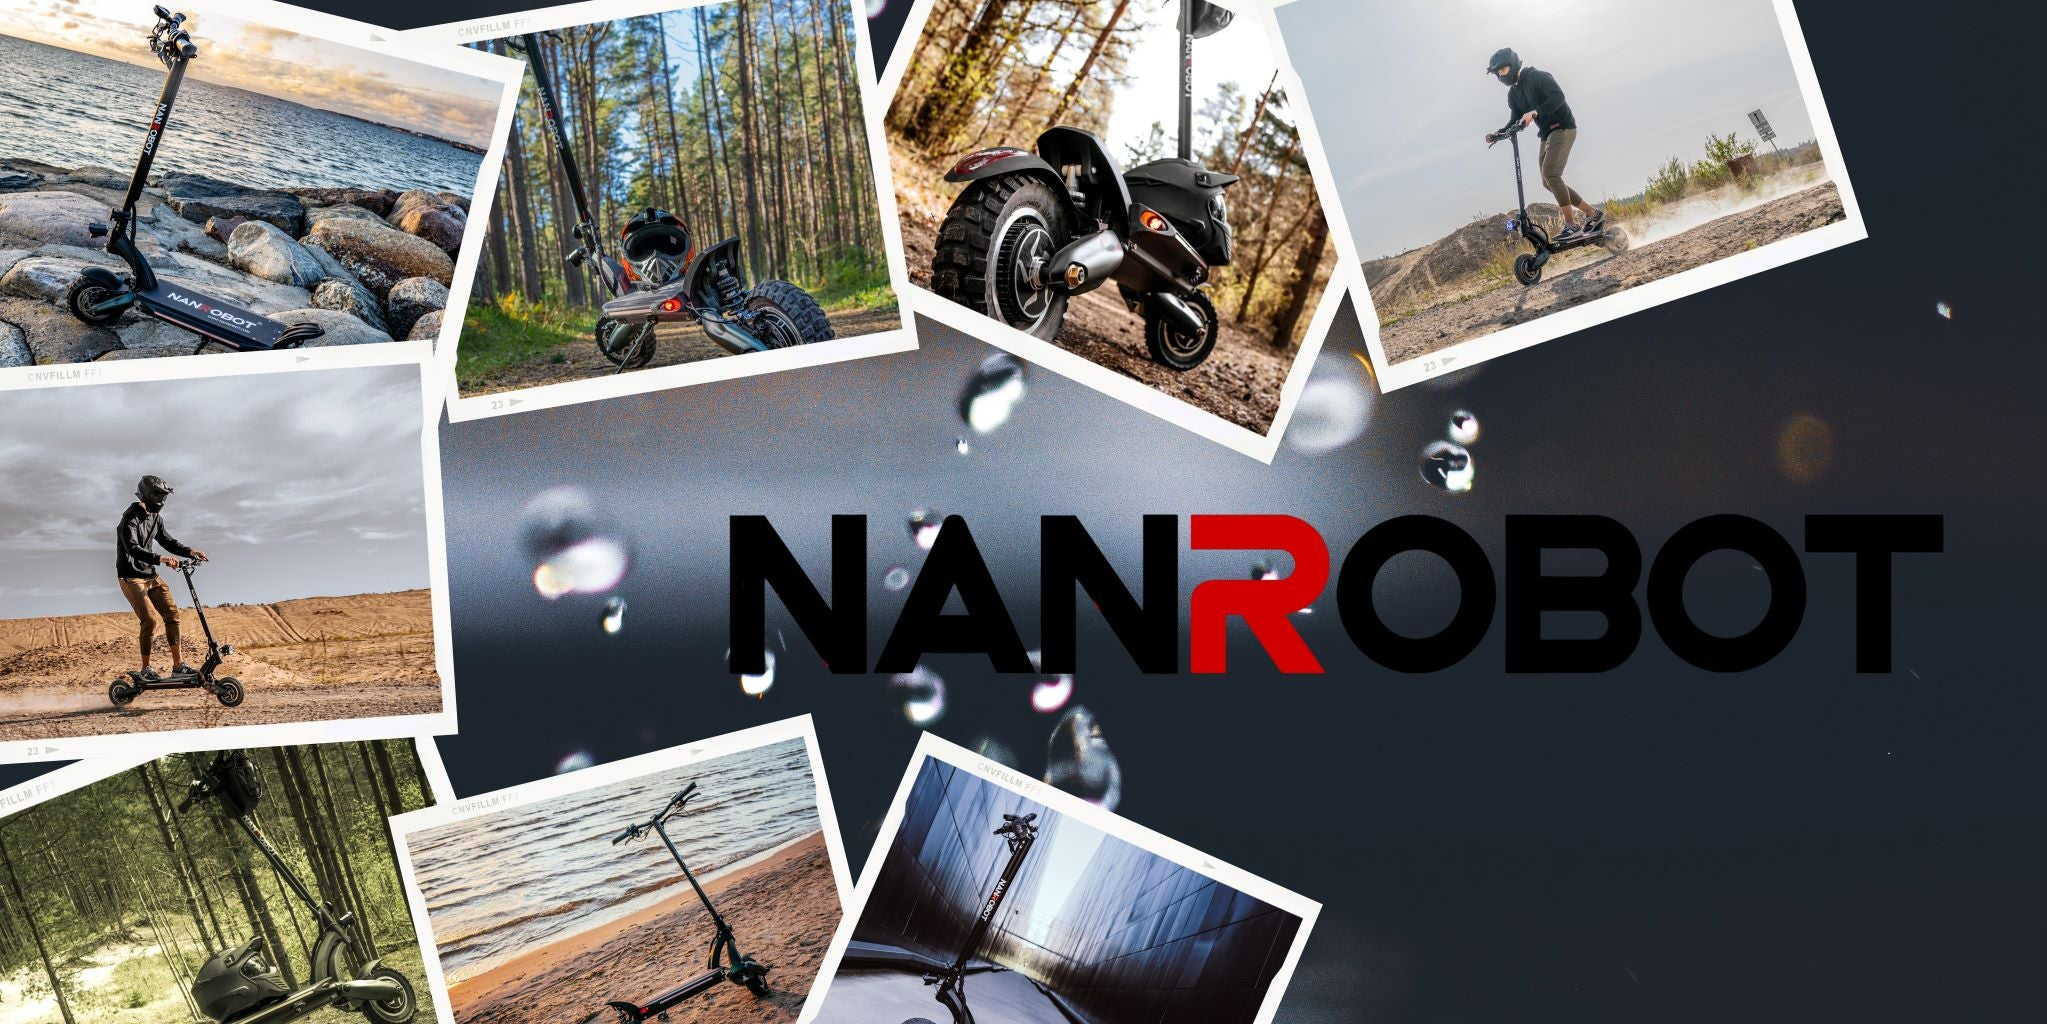 NANROBOT Electric Scooters Canberra - ION DAN Electric Vehicles